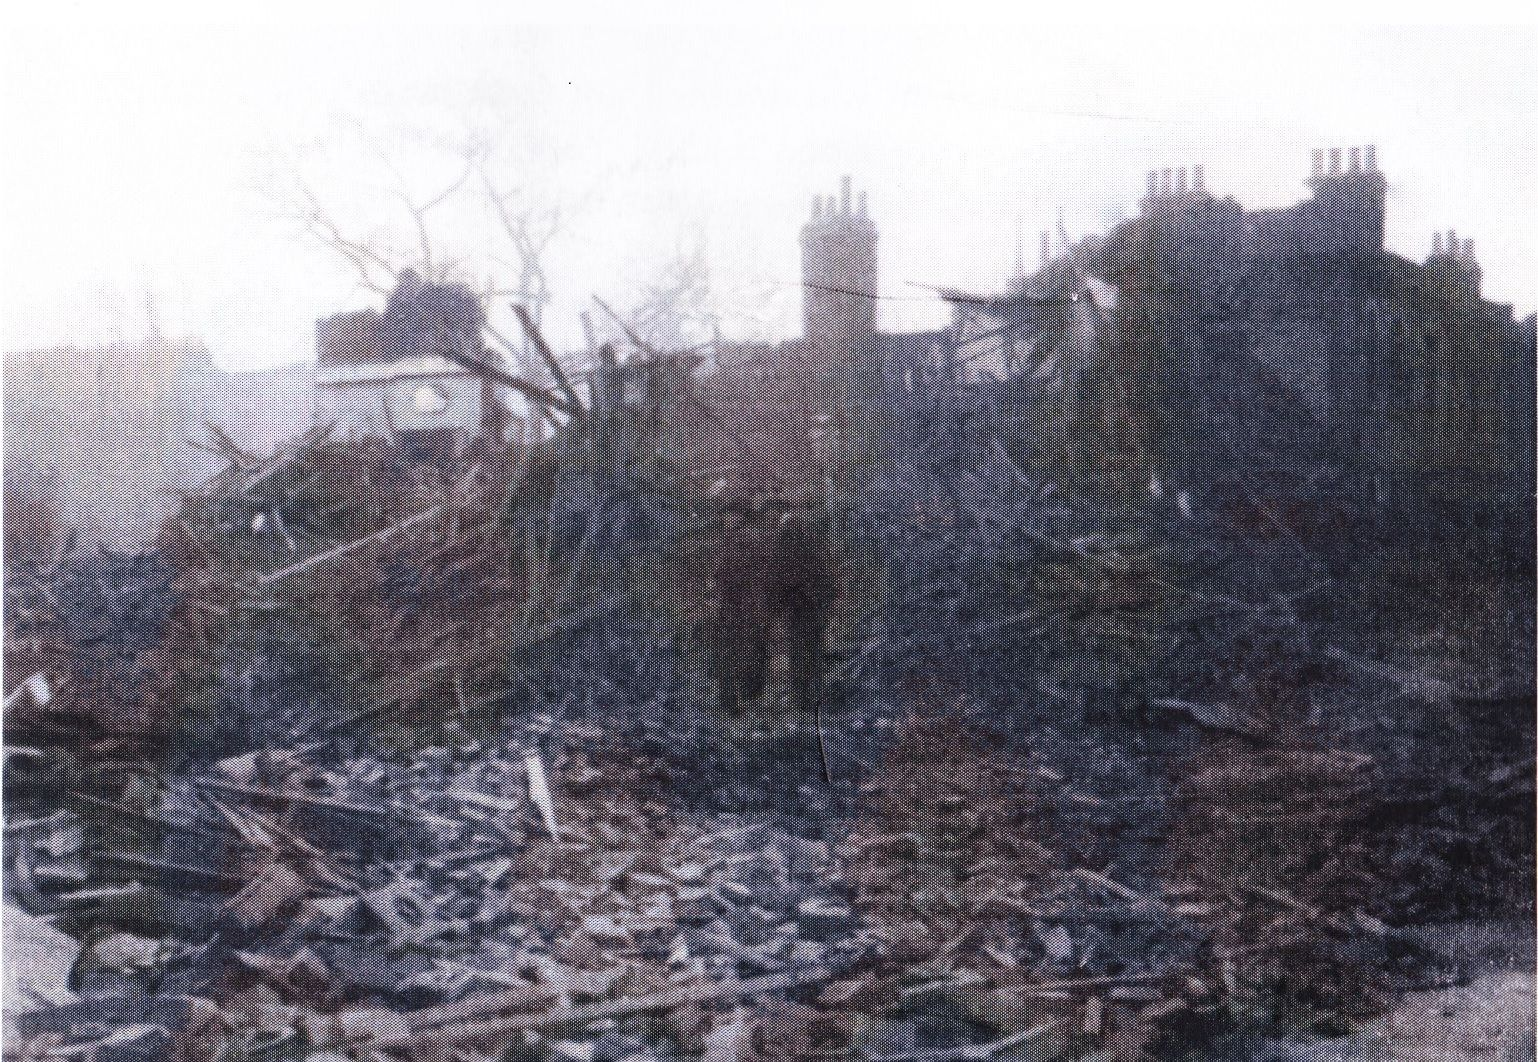 Middleton Road, London in the aftermath of the bomb explosion on 26th December 1940